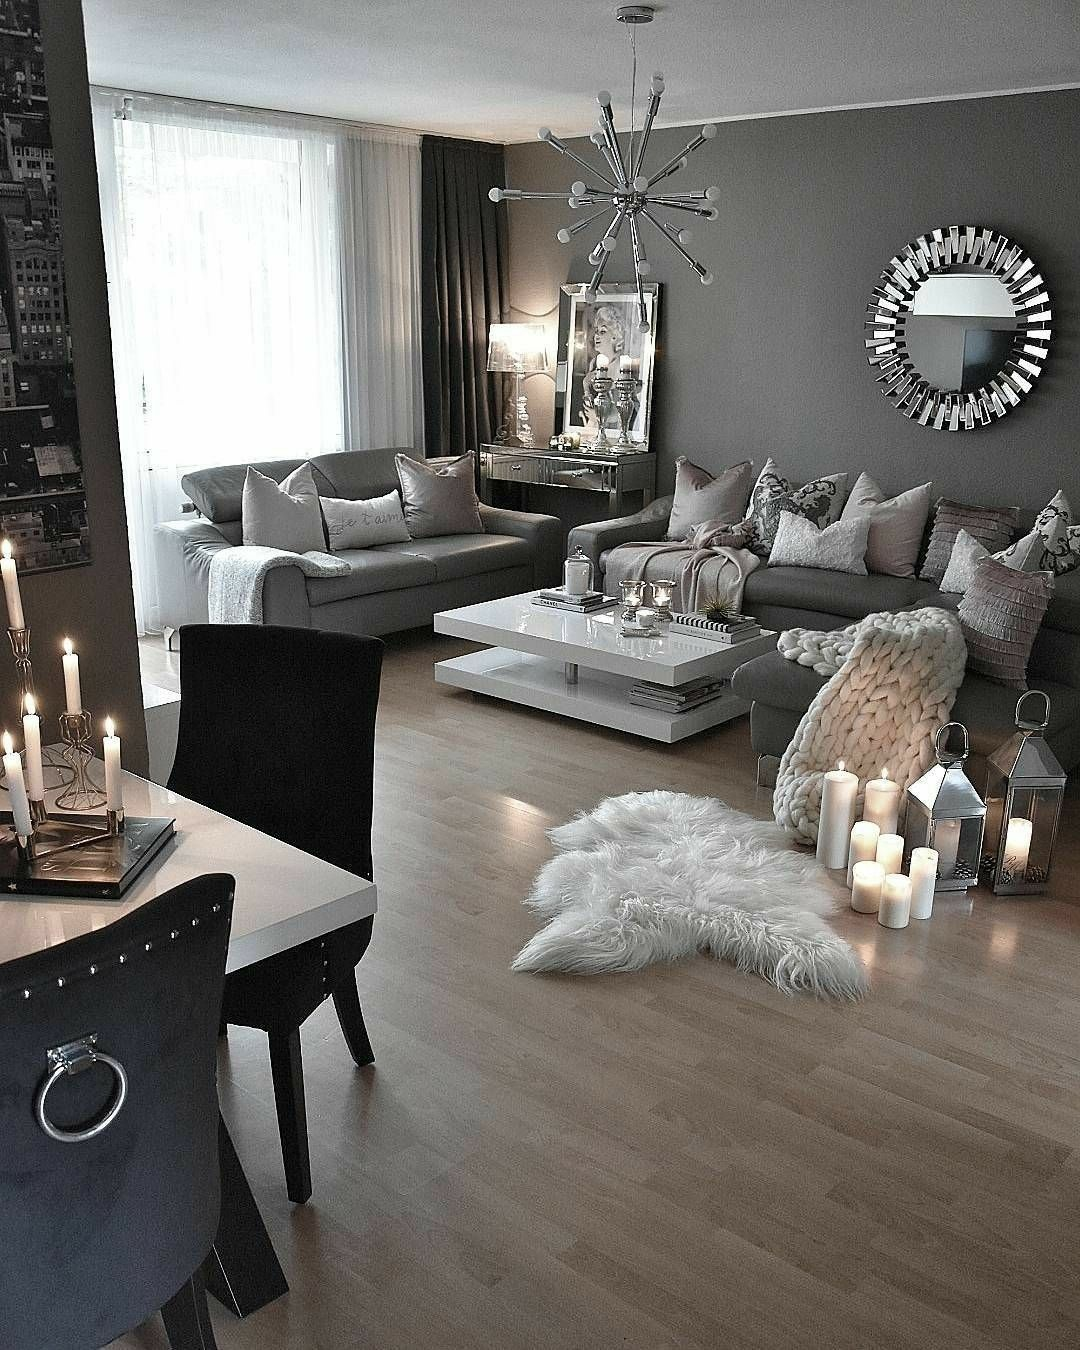 Black White And Grey Living Room Design P I N T E R E S T J A N E L L Y X O X I Living Room